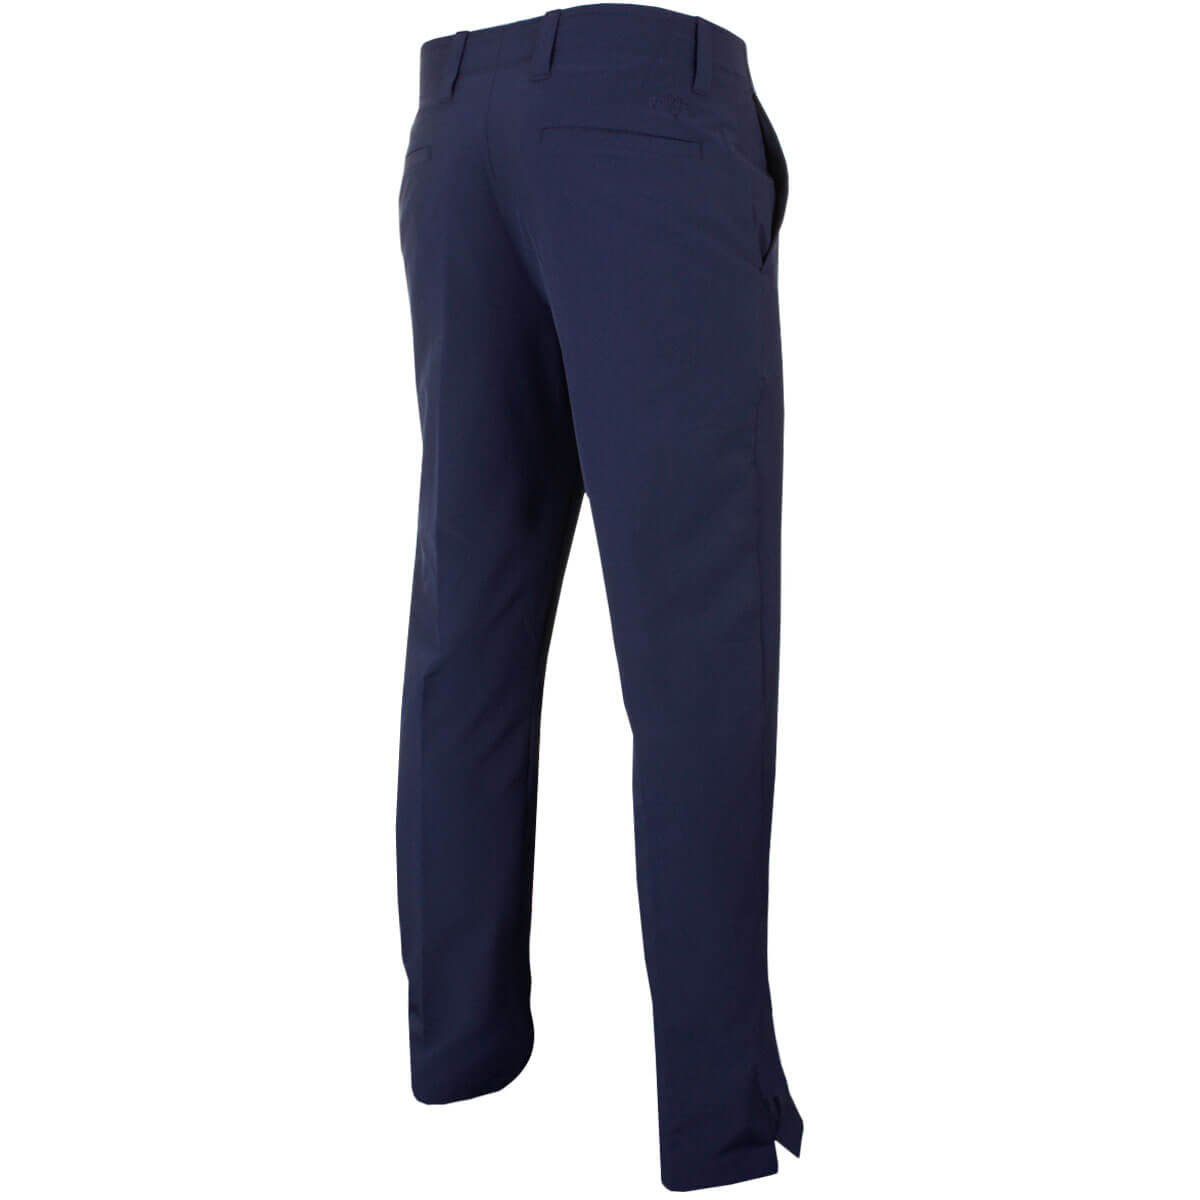 Callaway-Mens-2019-Chev-Tech-II-Lightweight-Stretch-Golf-Trousers-28-OFF-RRP thumbnail 12